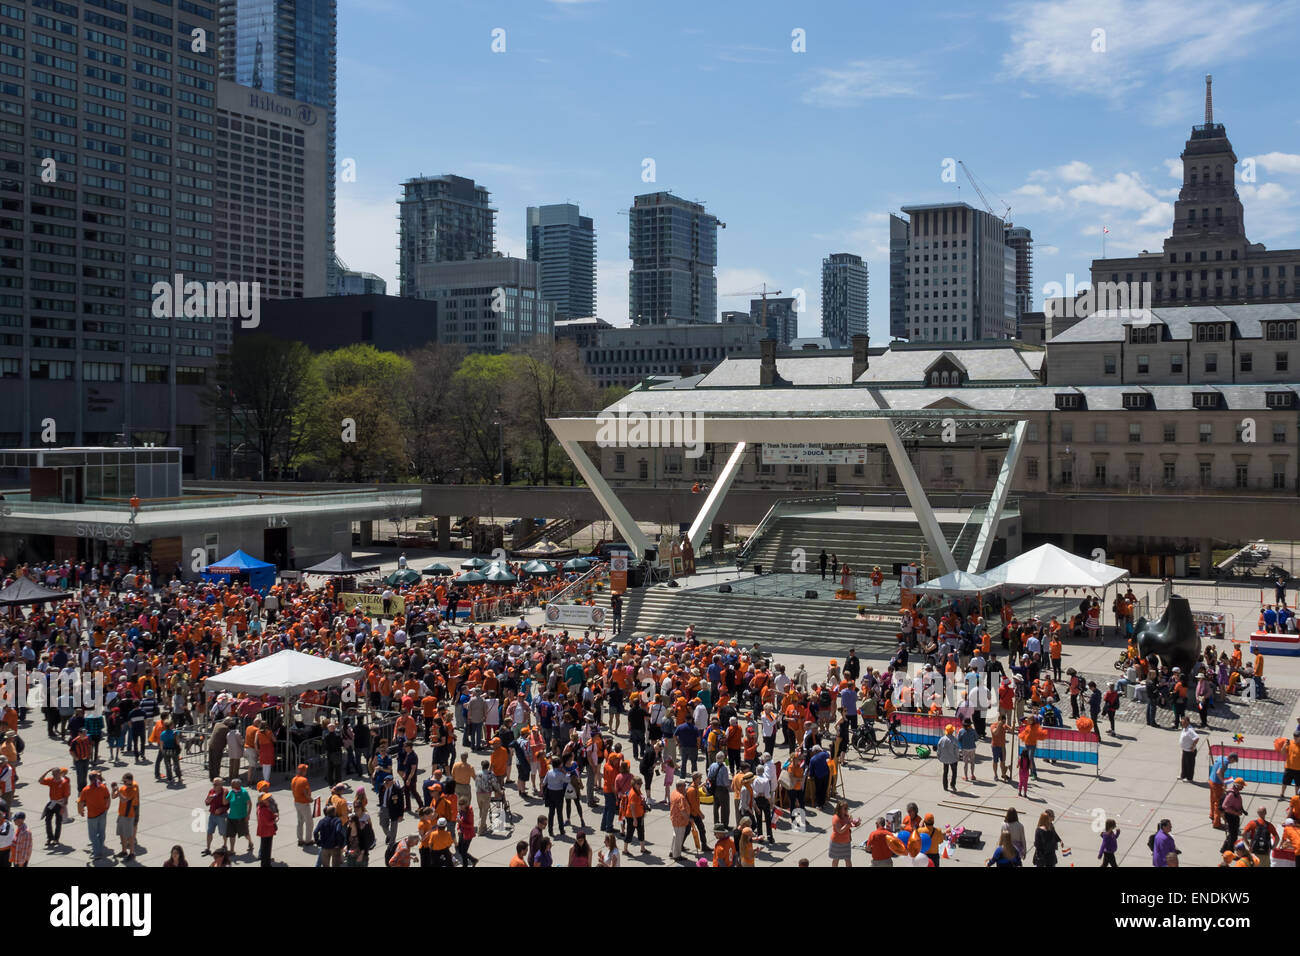 TORONTO, CANADA - MAY 2, 2015: People rally and celebrate the 70th anniversary of the end of the Second World War, - Stock Image